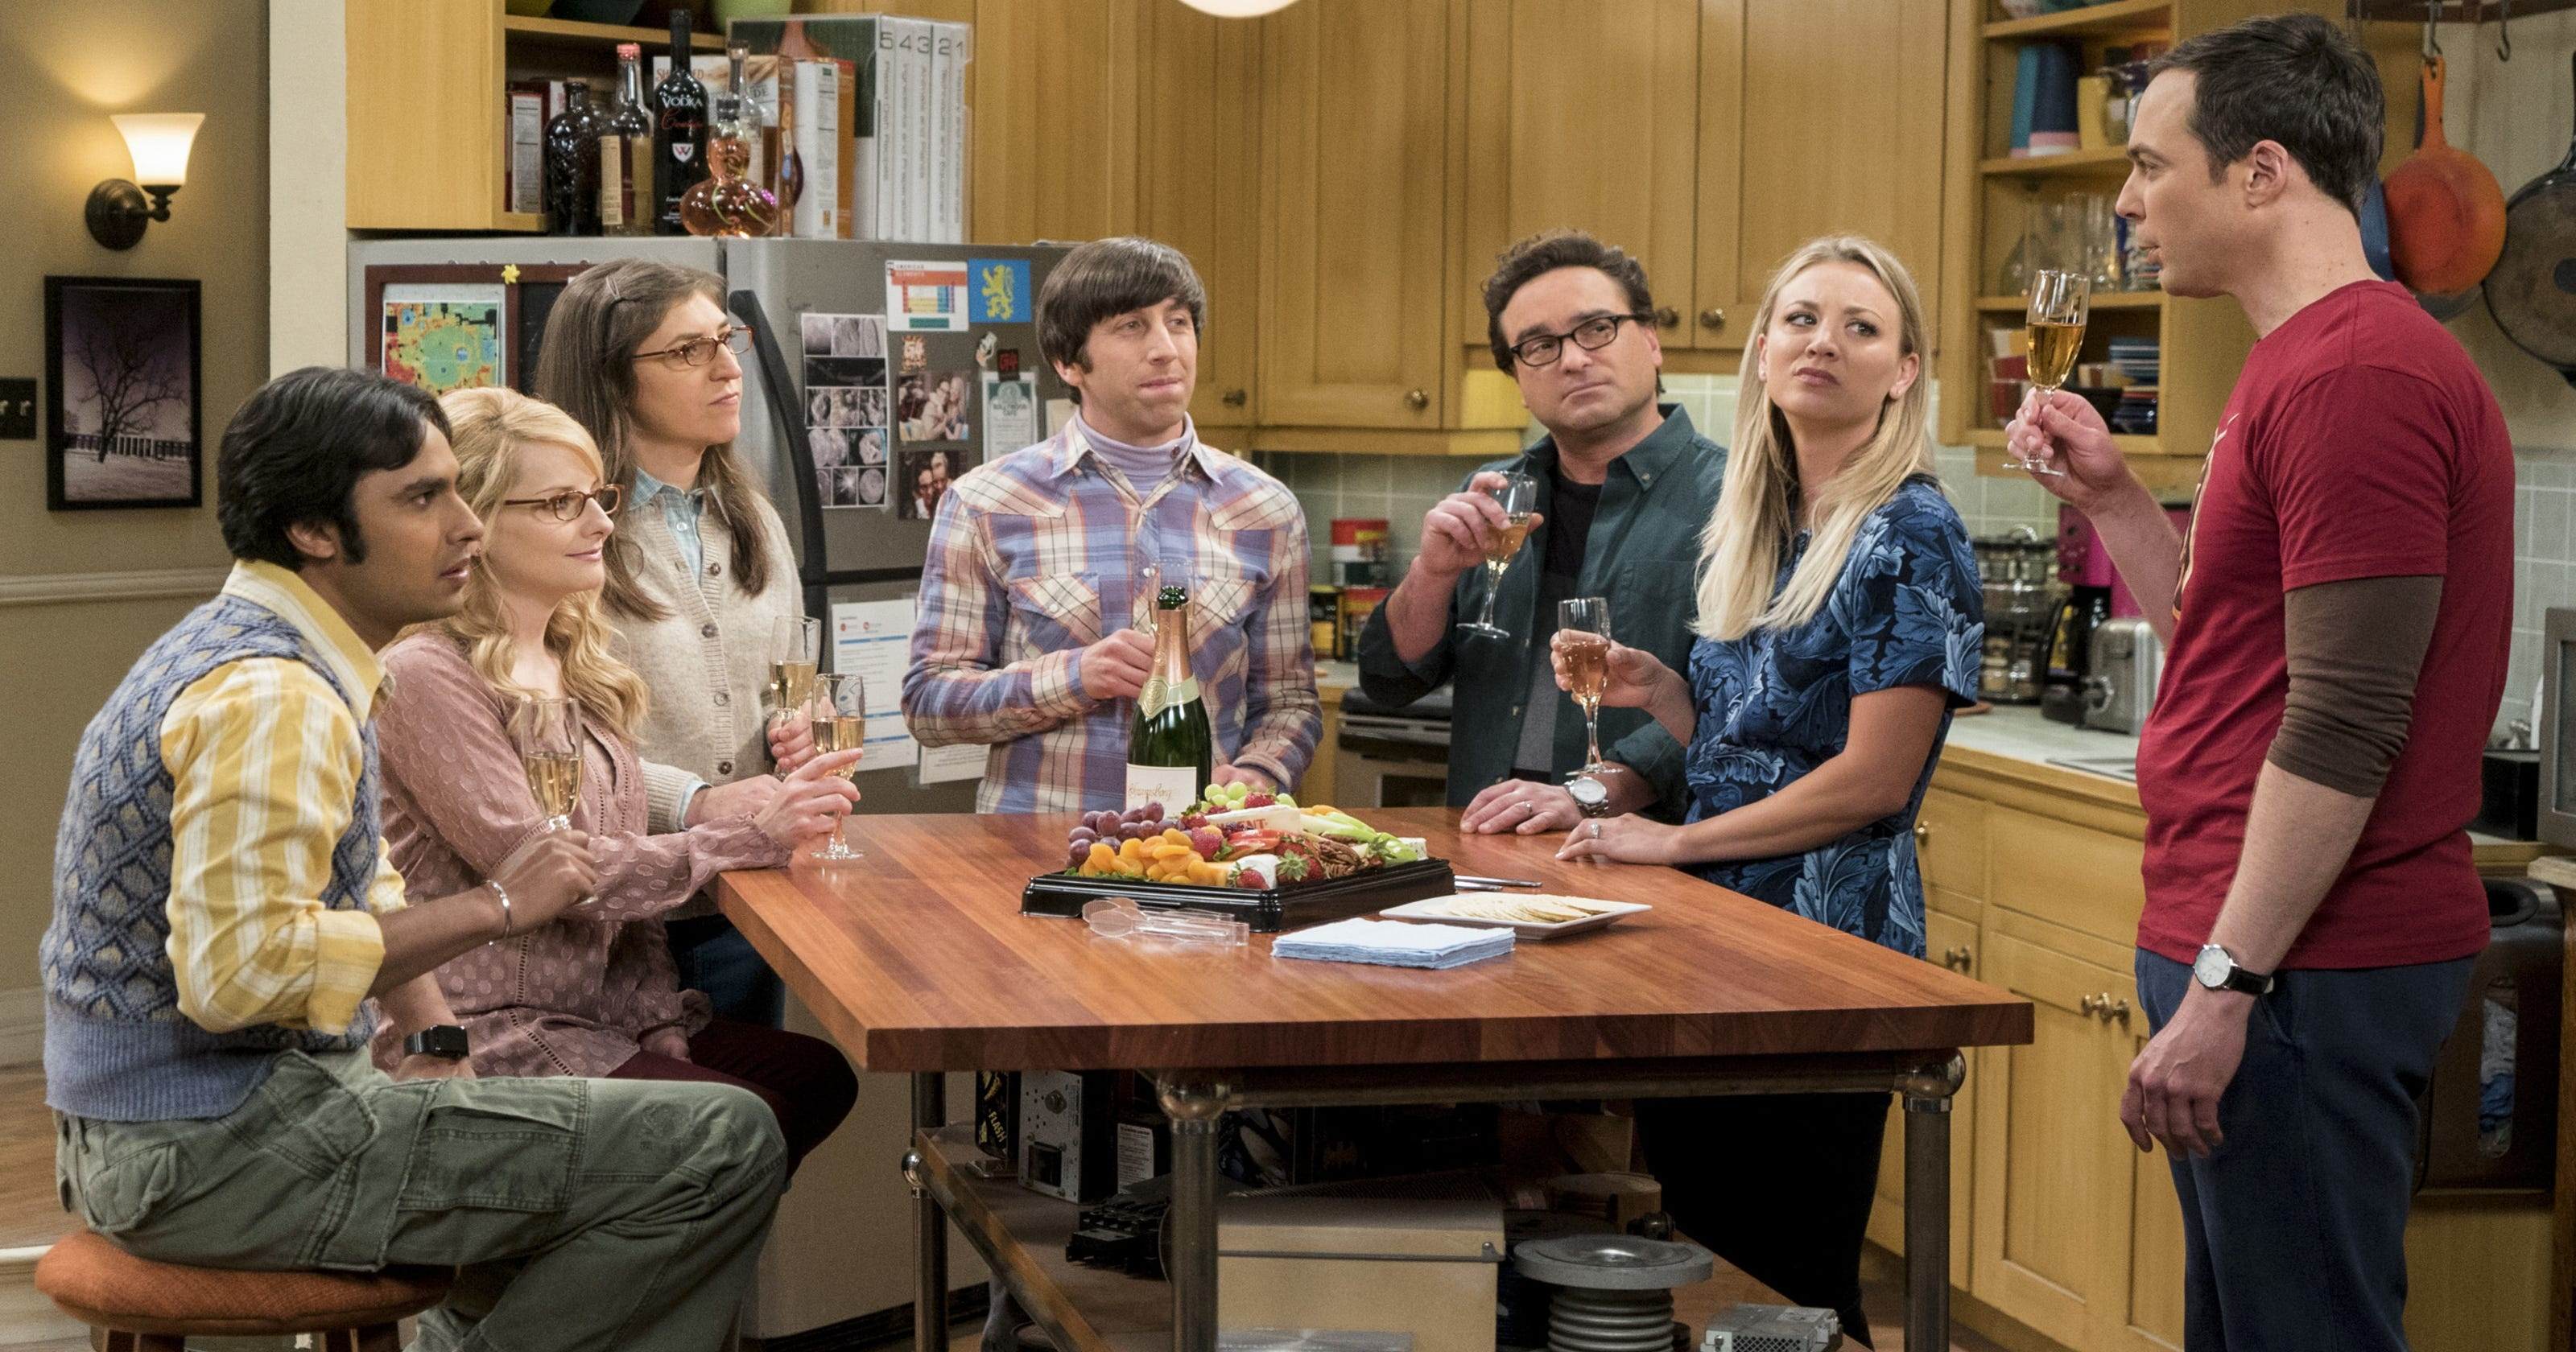 The Big Bang Theory' is right to finish after the coming